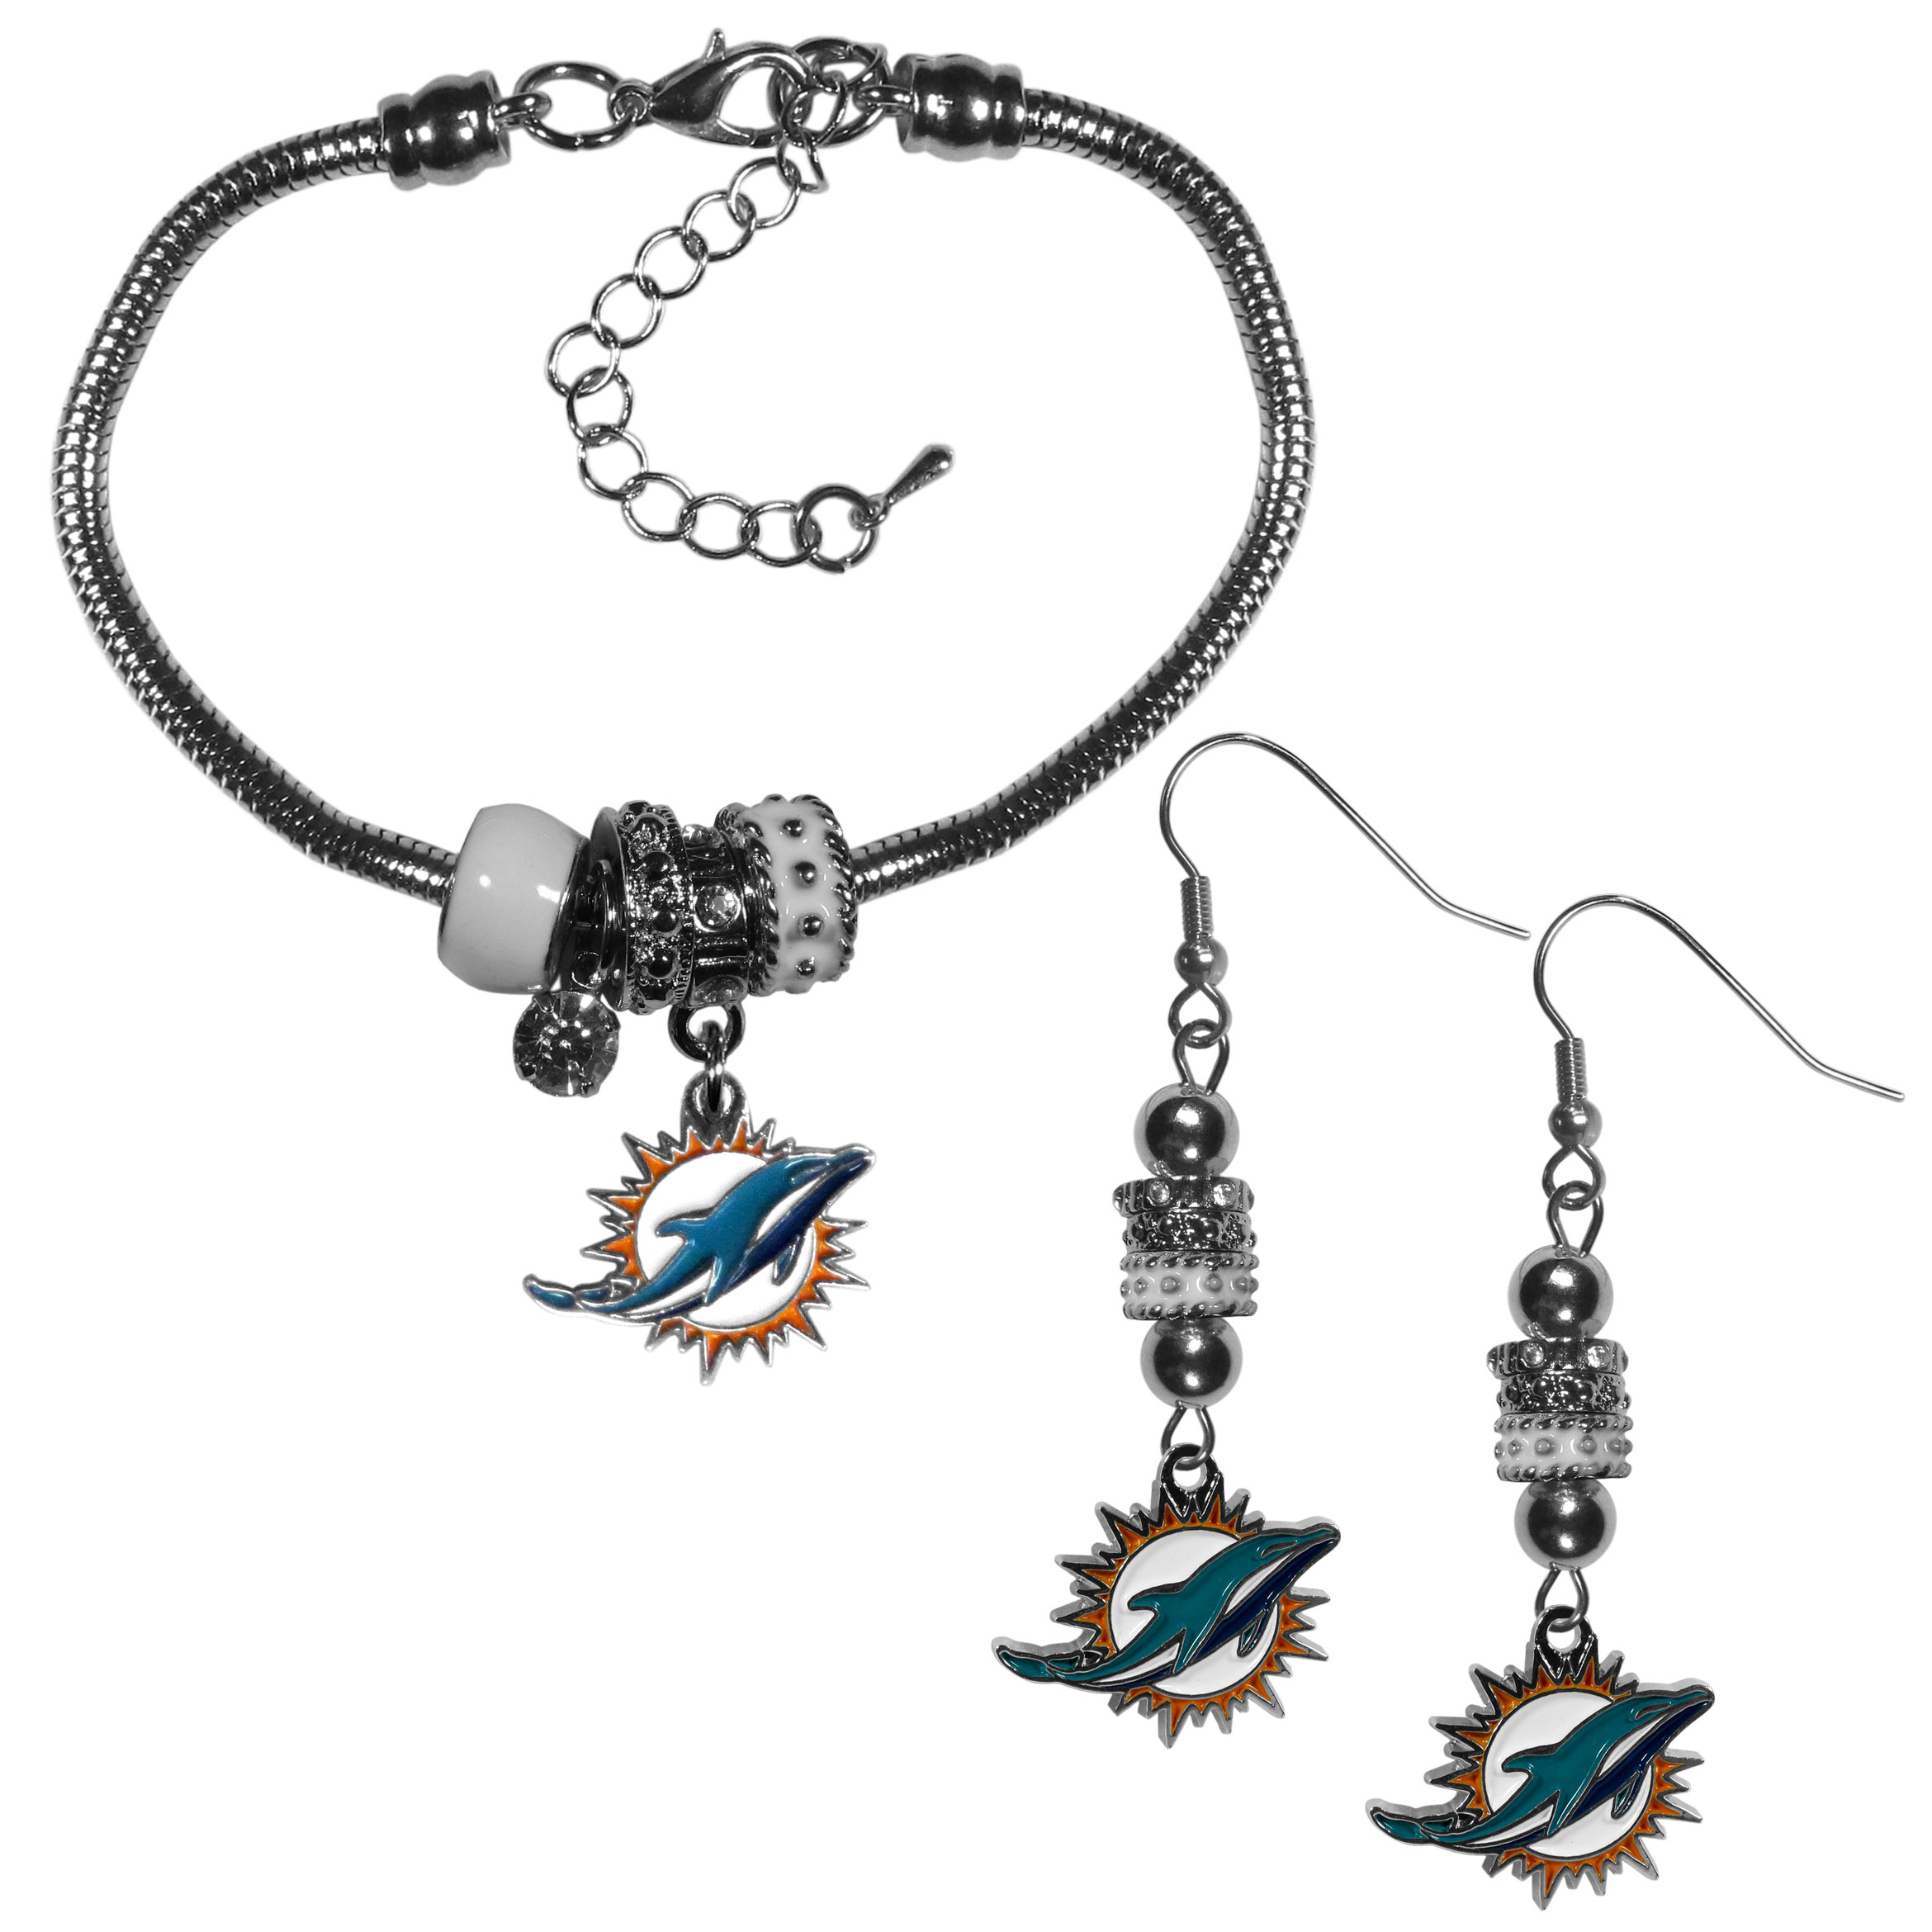 Miami Dolphins Euro Bead Earrings and Bracelet Set - We combine the popular Euro bead style with your love of the Miami Dolphins with this beautiful jewelry set that includes earrings and a matching bracelet. The stylish earrings feature hypoallergenic, nickel free fishhook posts and 3 team colored Euro beads and a metal team charm. The matching snake chain bracelet is 7.5 inches long with a 2 inch extender and 4 Euro beads with a rhinestone charm and team charm.